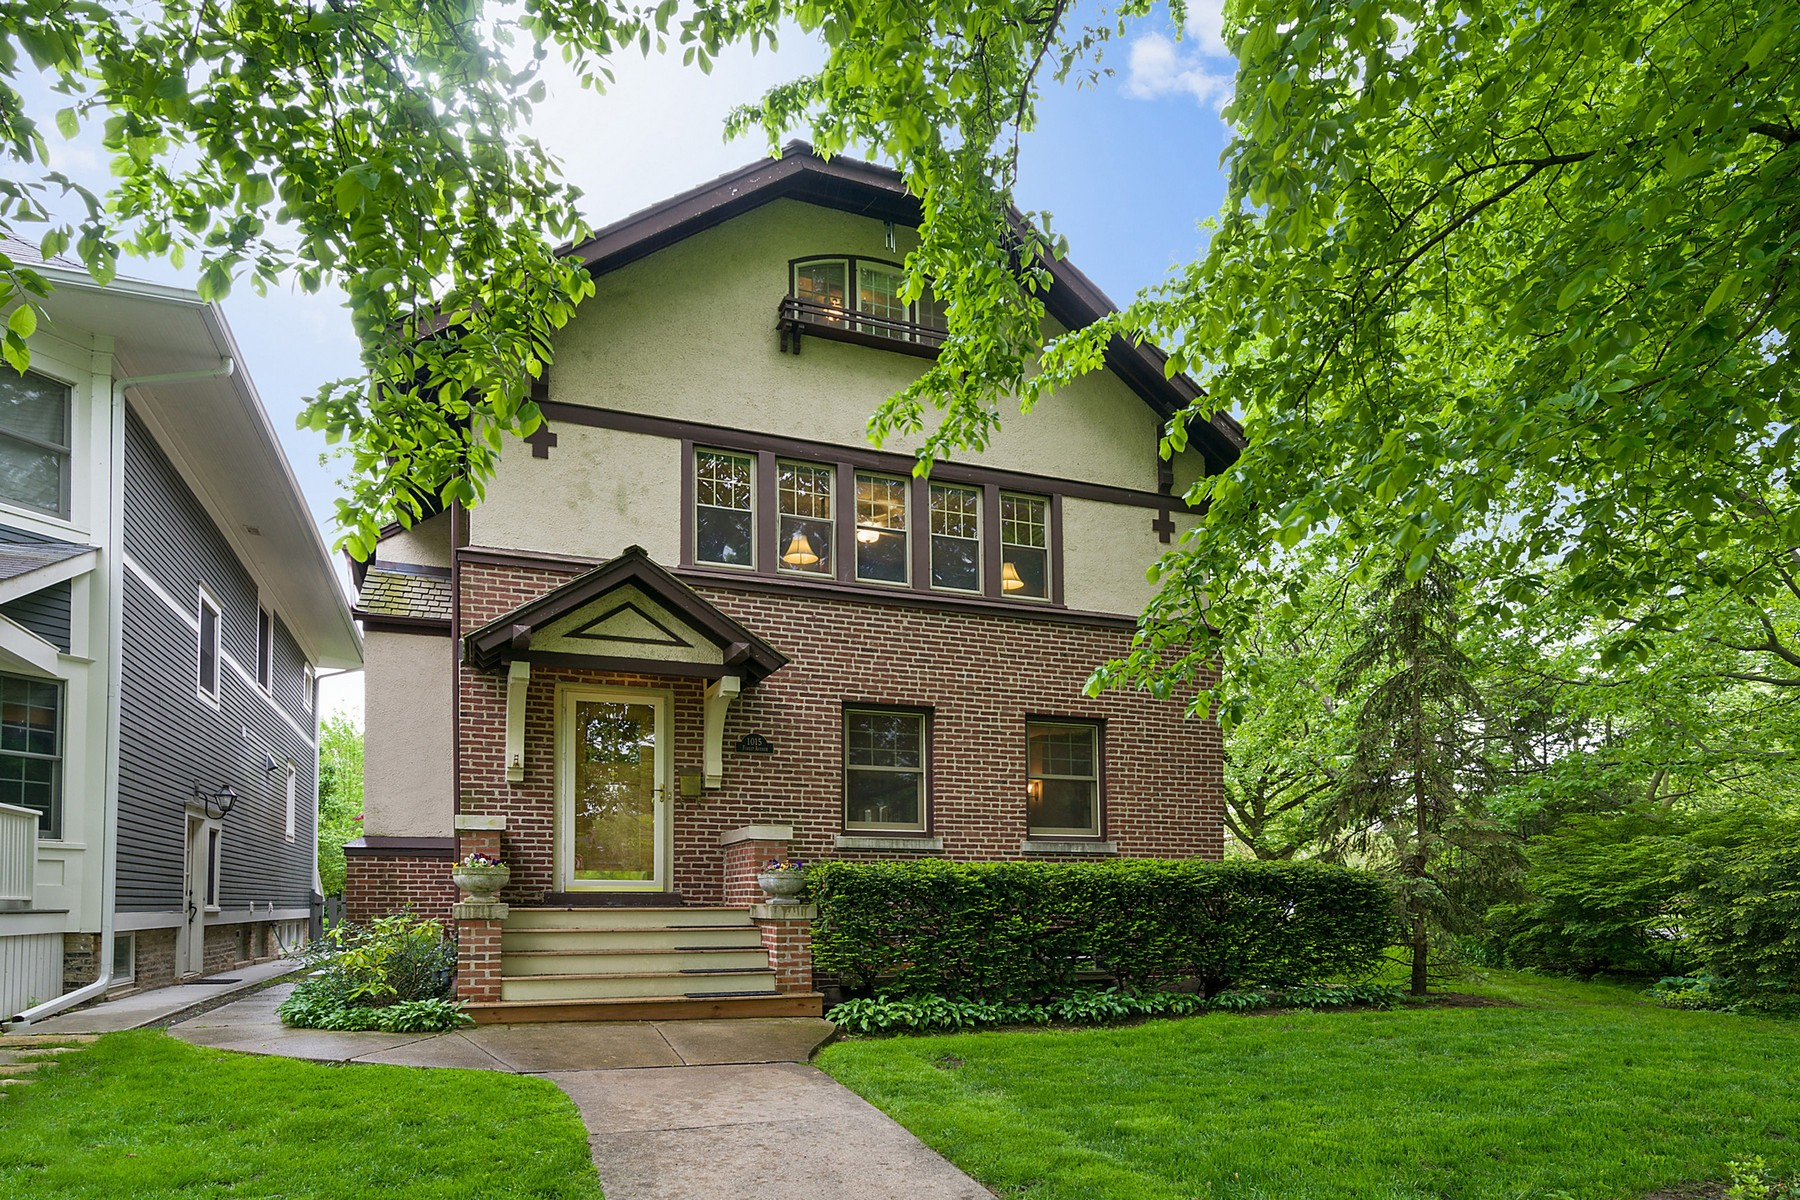 Single Family Home for Sale at Great five Bedroom home 1015 Forest Wilmette, Illinois, 60091 United States